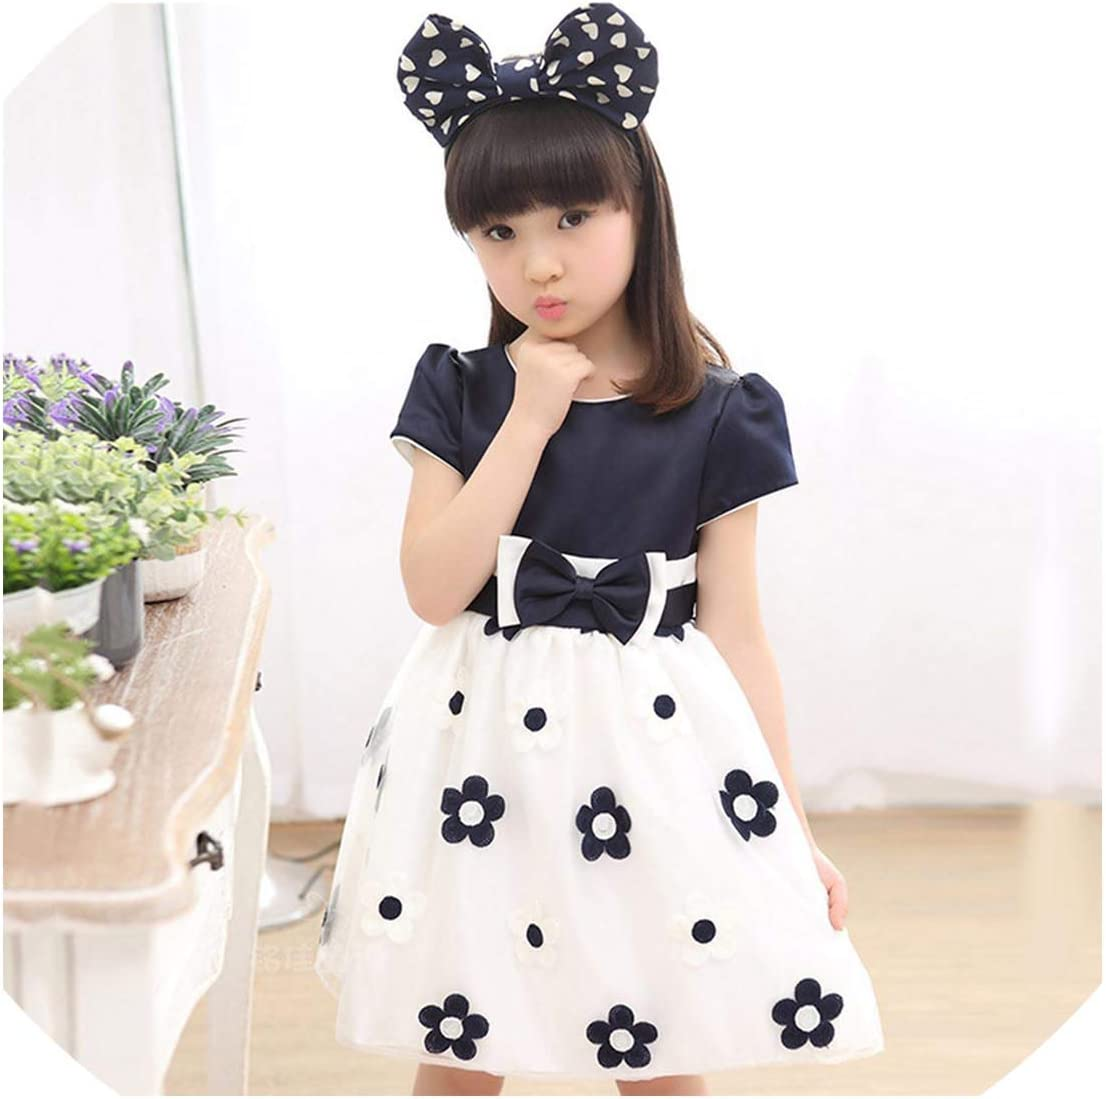 online retailer newest collection super quality Amazon.com: Floral Dress for Big Girls Winter Mesh Girls Dress Bow ...